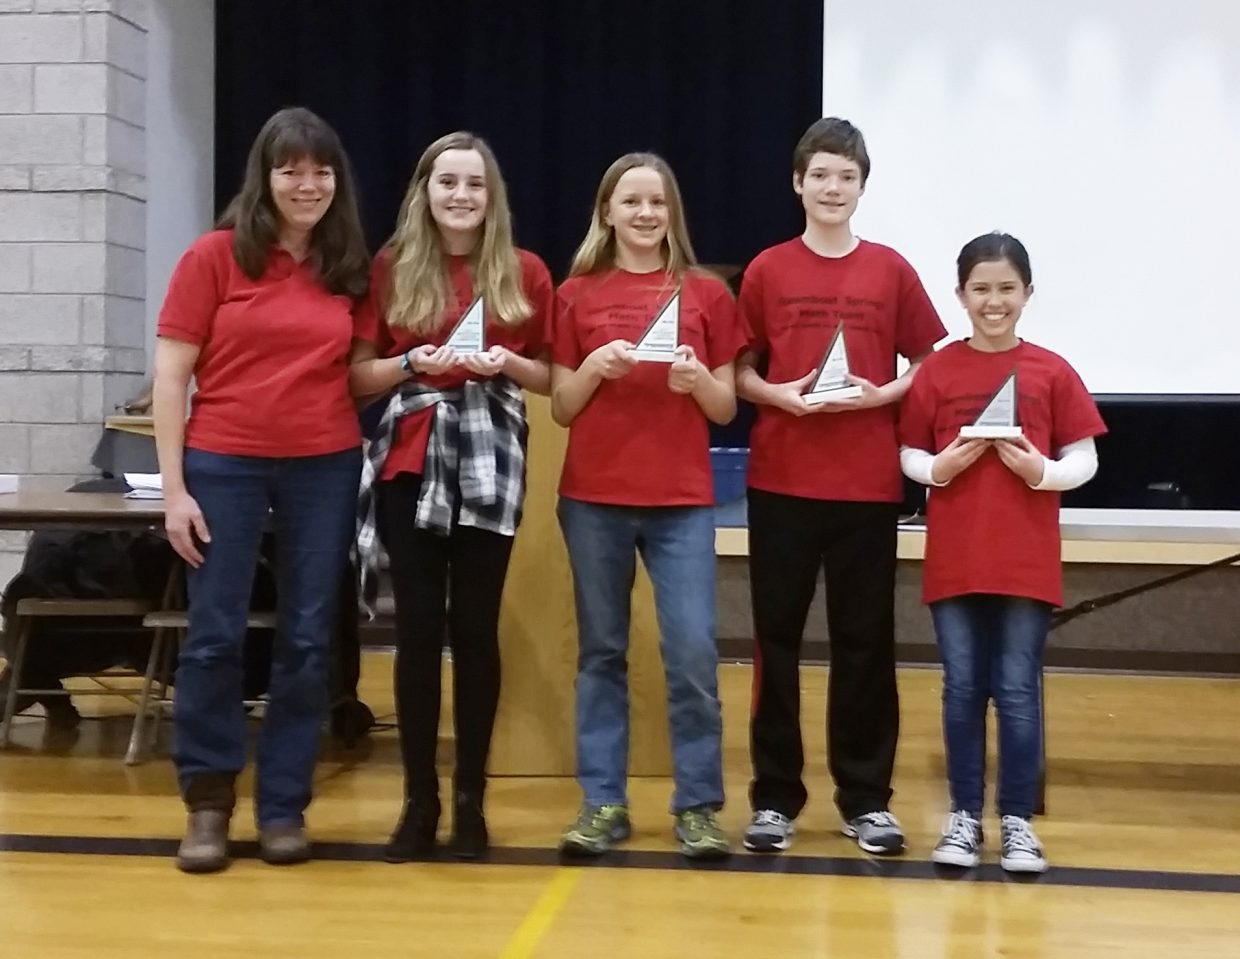 The Steamboat Springs Middle School math team took first place at the Western Slope Chapter MATHCOUNTS competition held in Grand Junction Feb. 4. Fifteen schools brought a total of 109 students to the competition. SSMS team coach Sally Lambert is pictured with members Morgan Graham, Jade Henderson, Shane Lambert and Suzy Magill. The four students and students and Indiana Kretzschmar have qualified to move on to the state competition, which will be held at University of Denver on March 18.